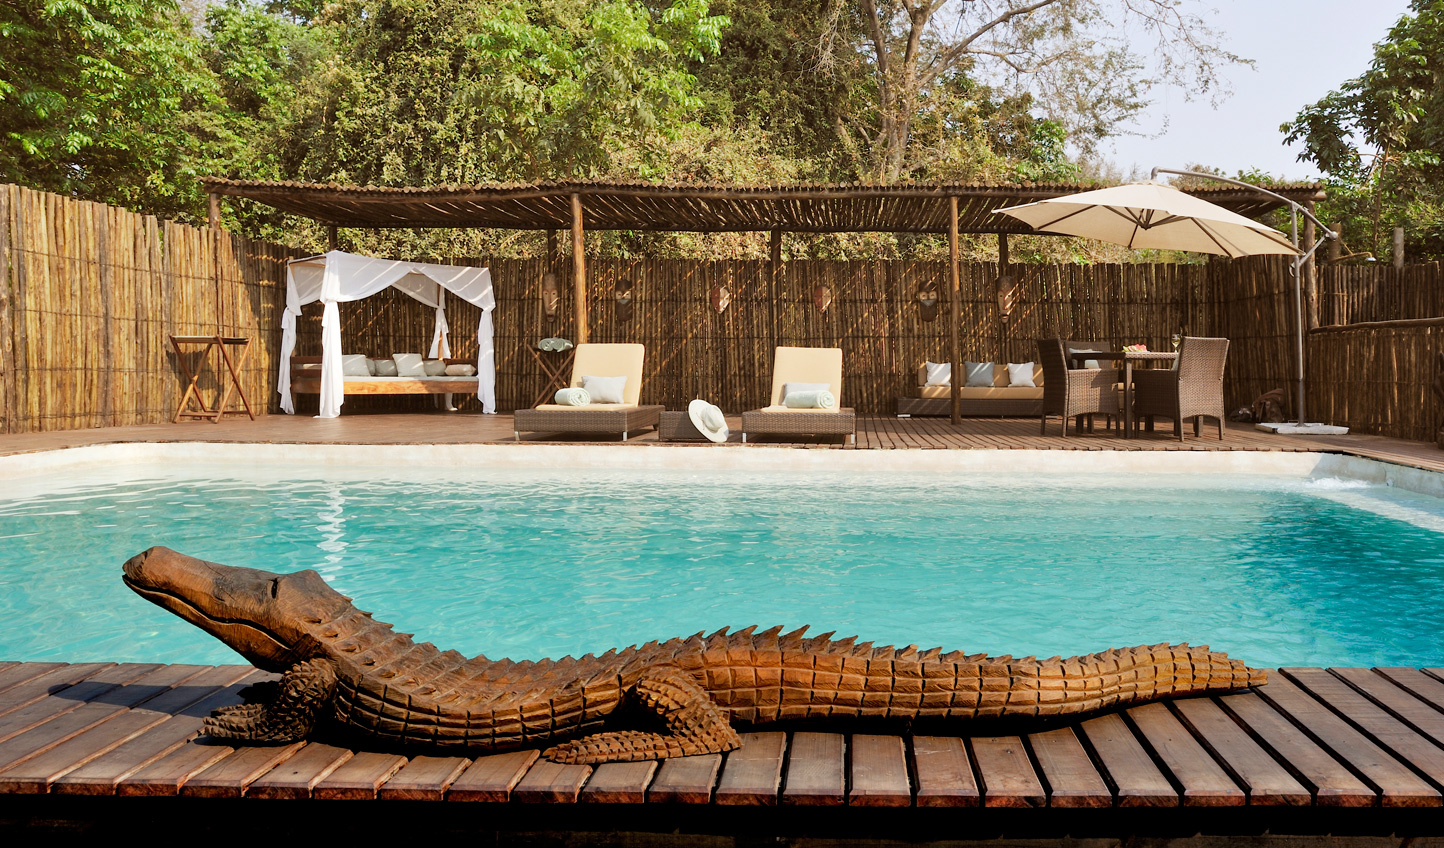 Cool off from the African heat by the pool